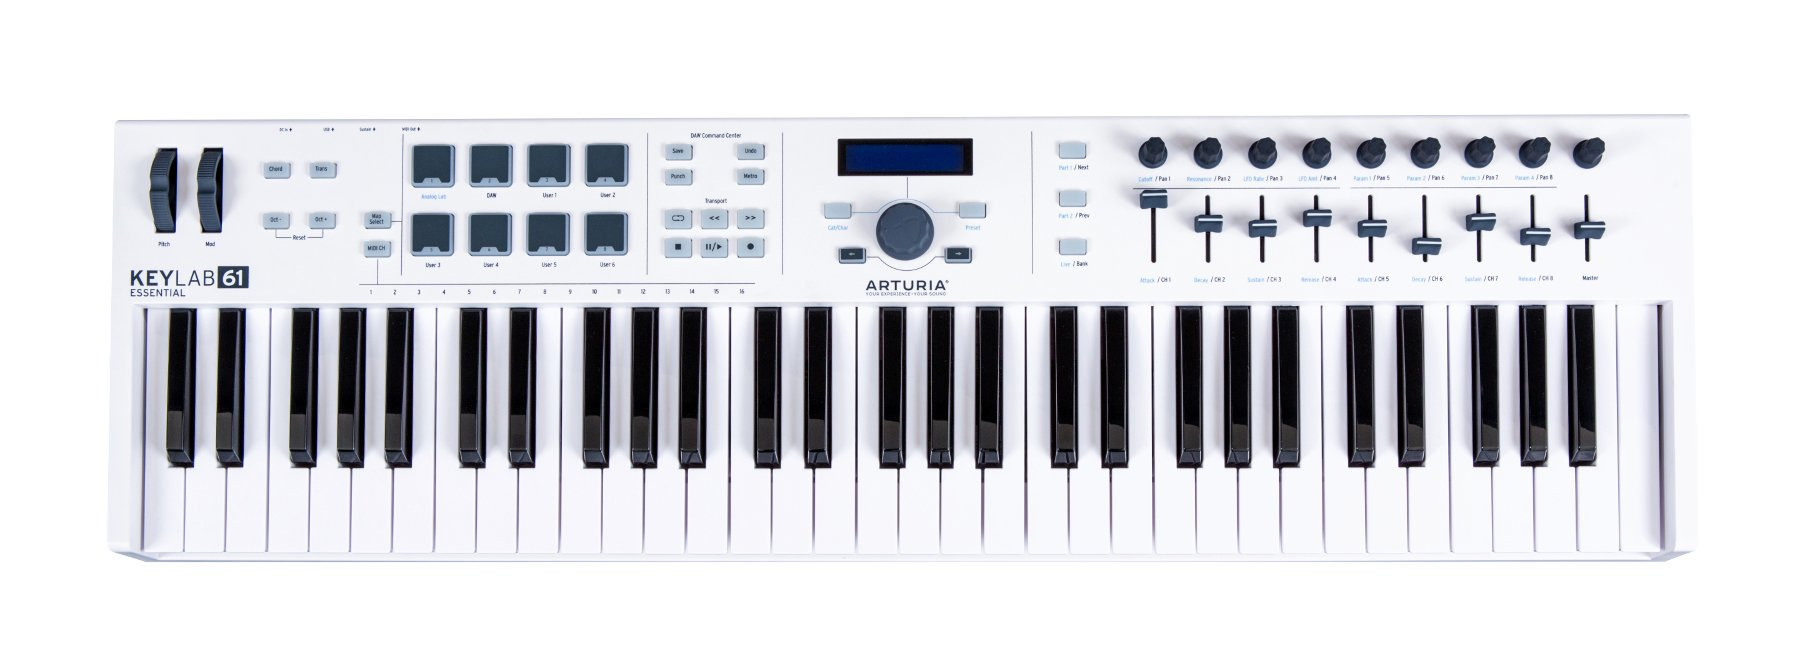 61-key Universal MIDI Controller with Software